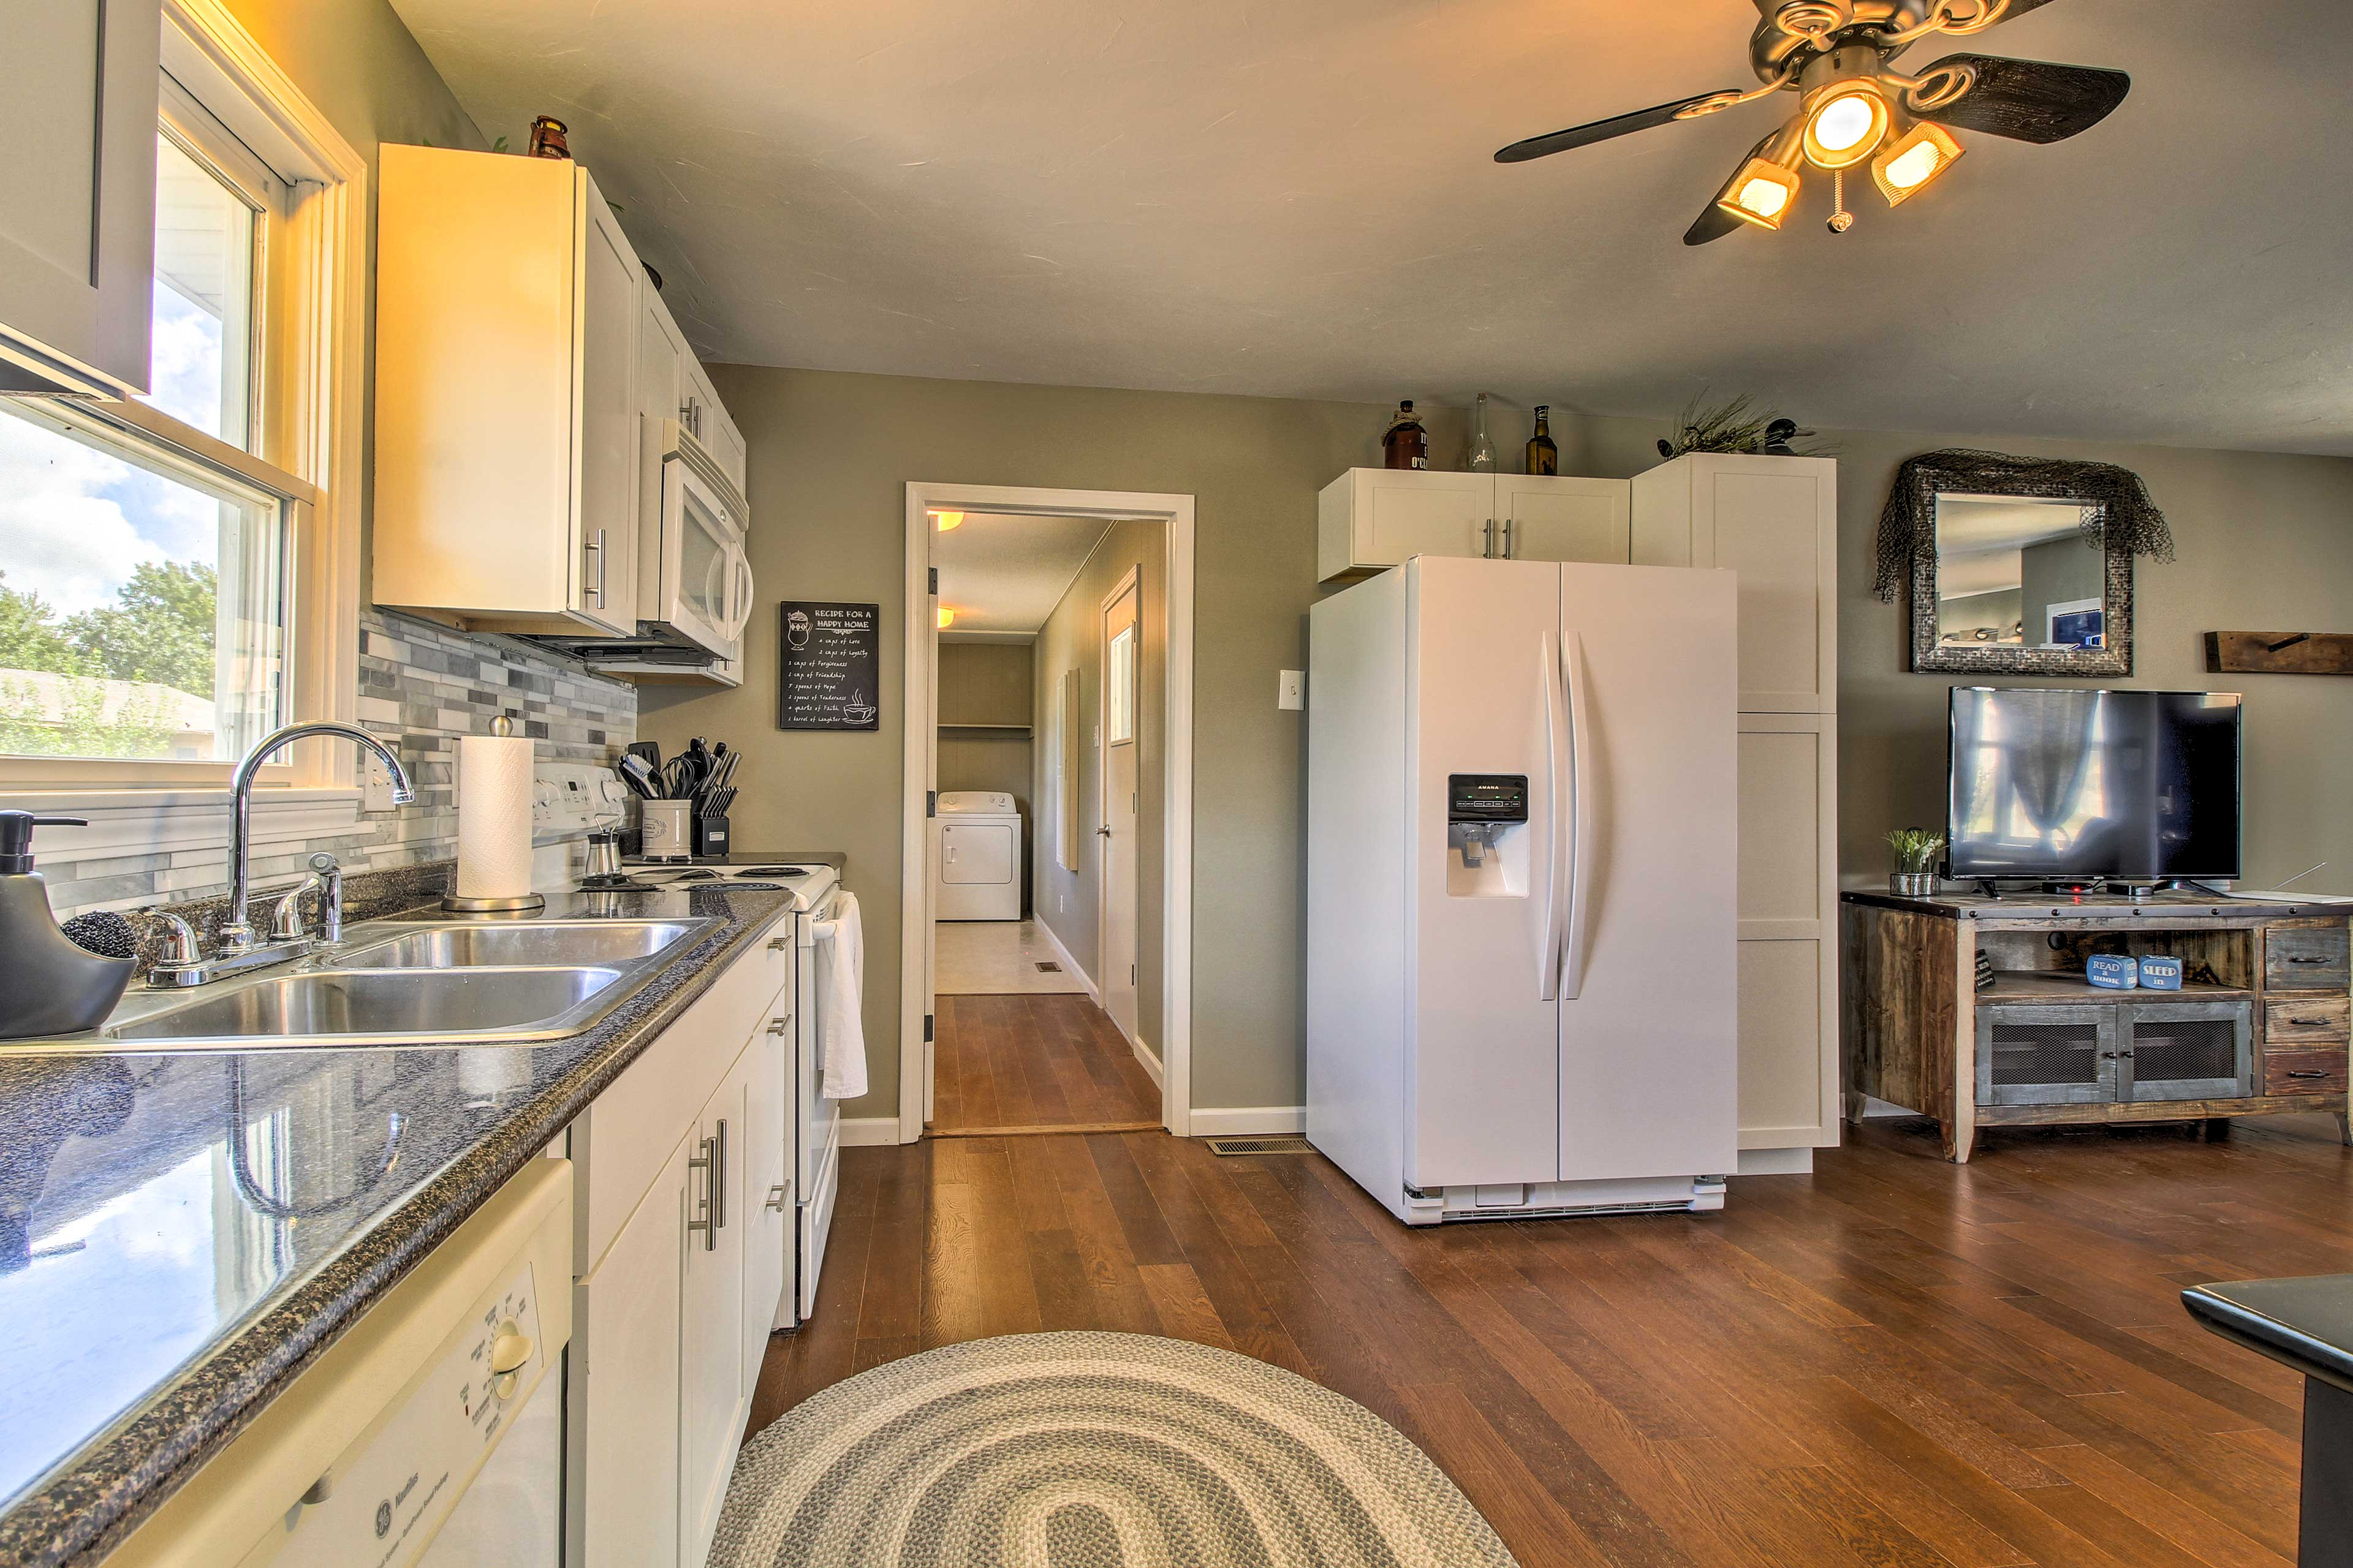 You'll find in-unit laundry machines down the hall.